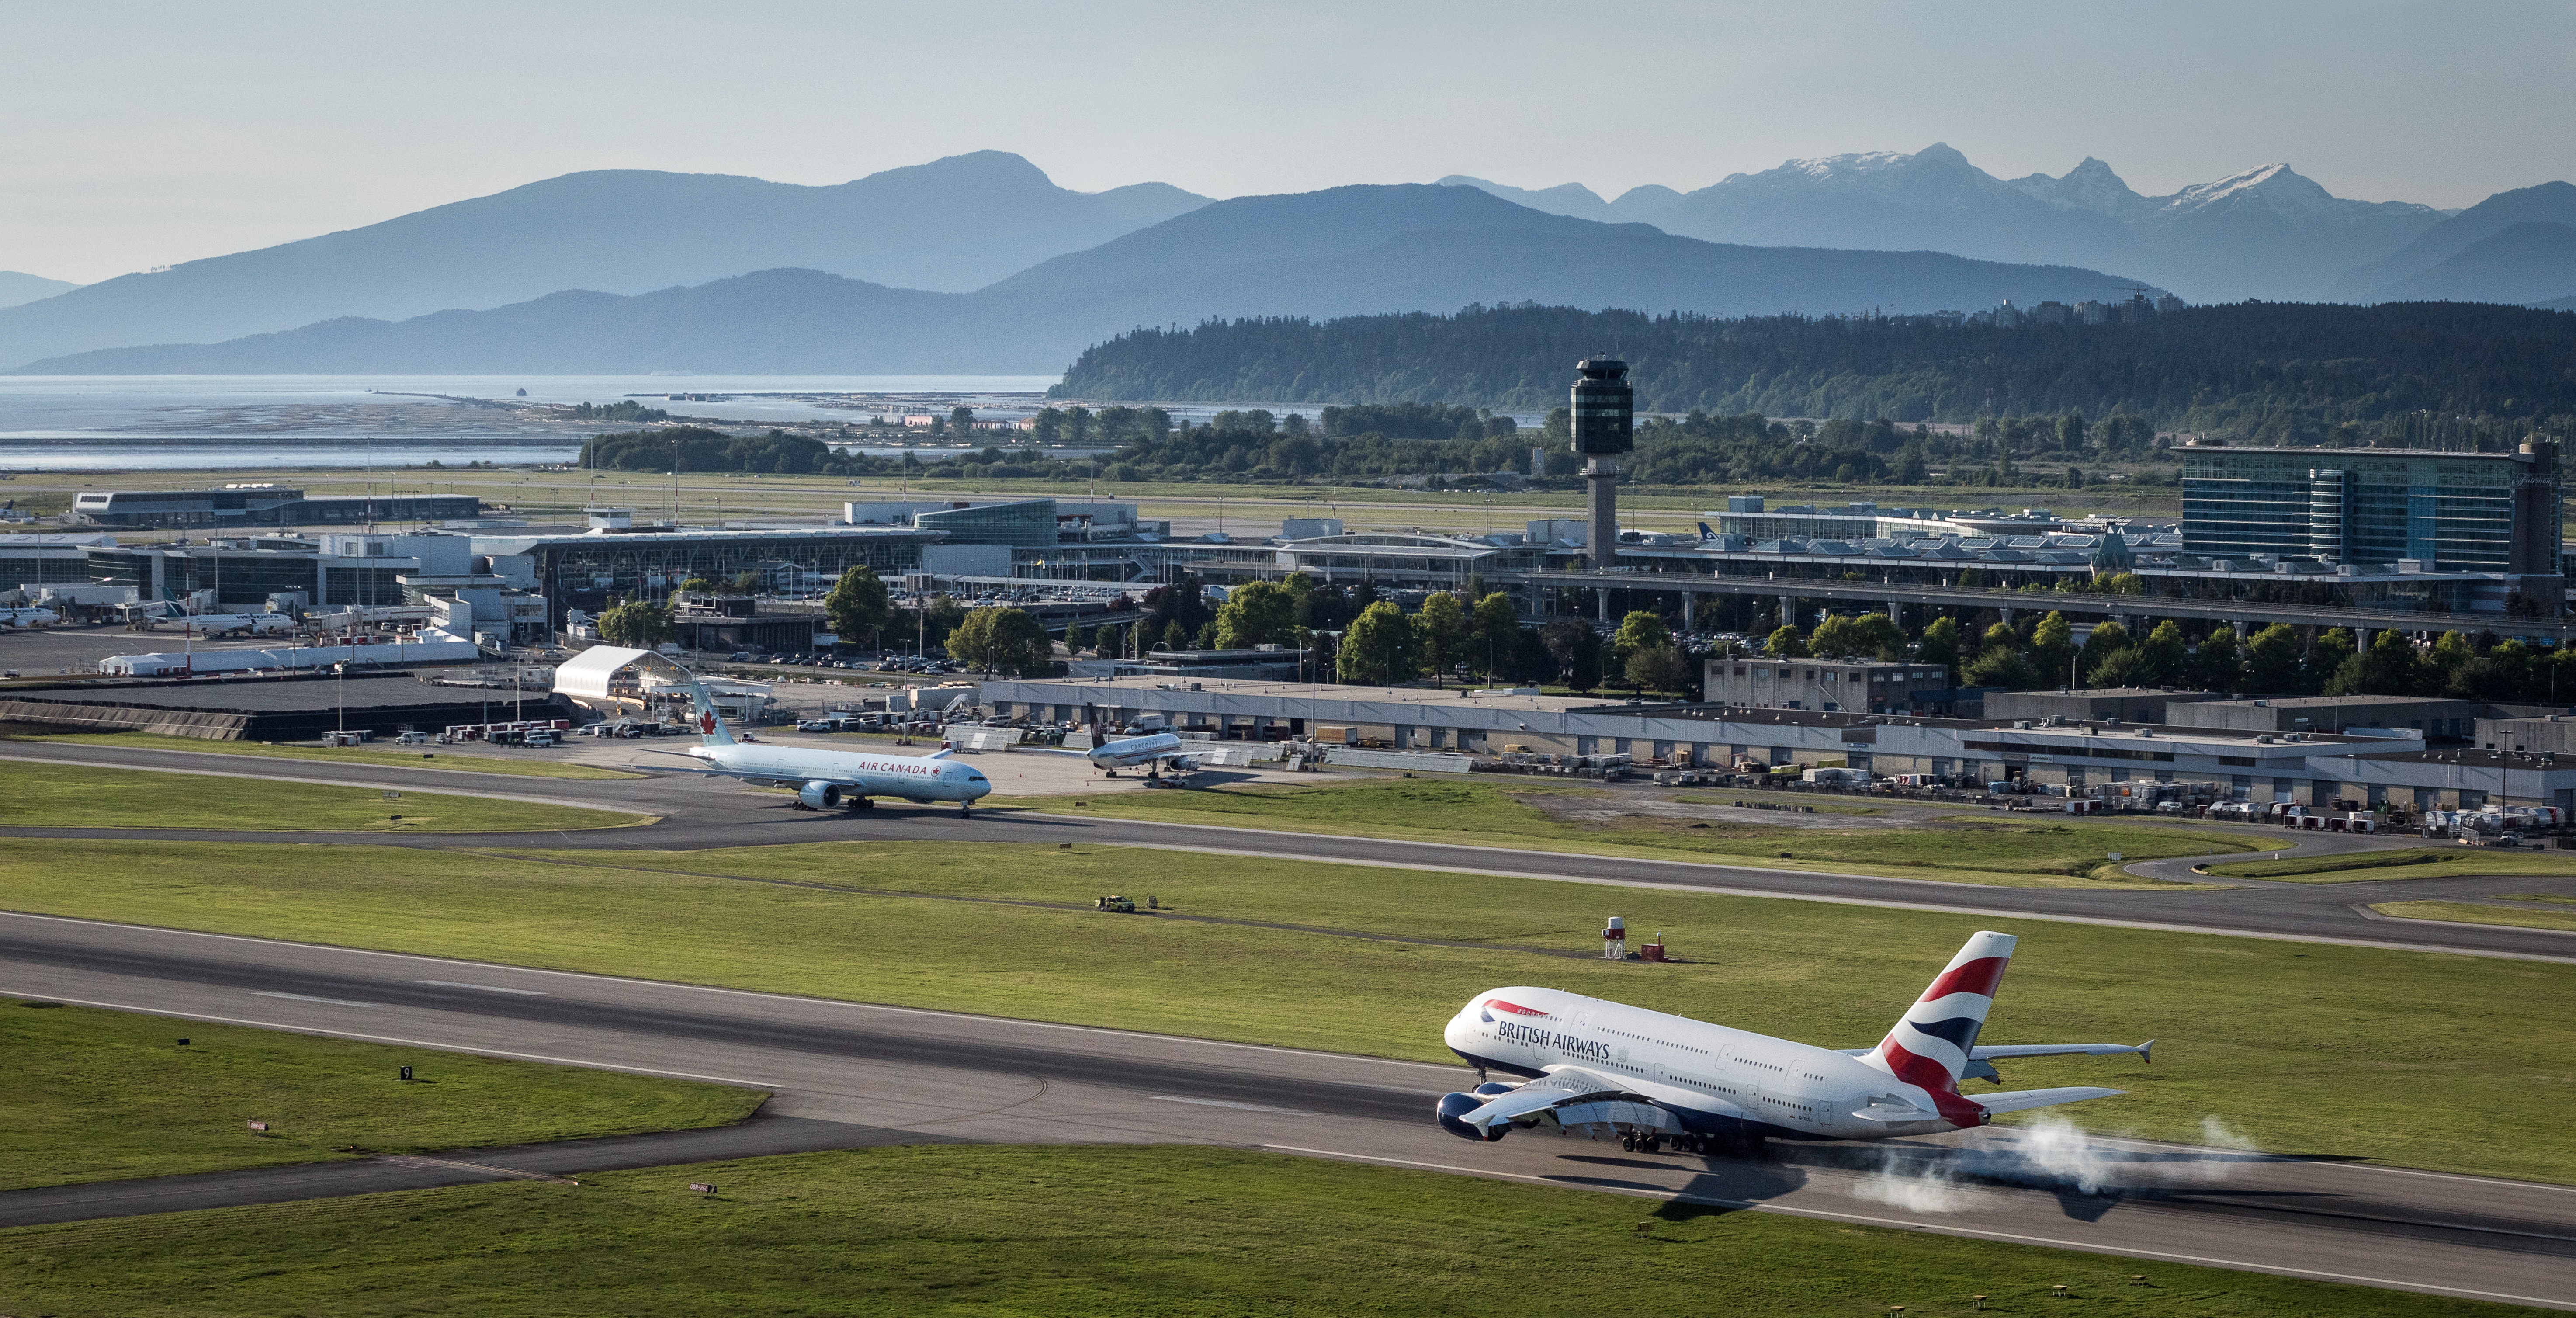 Top 20 Pictures Of 2016 At Yvr Yvr